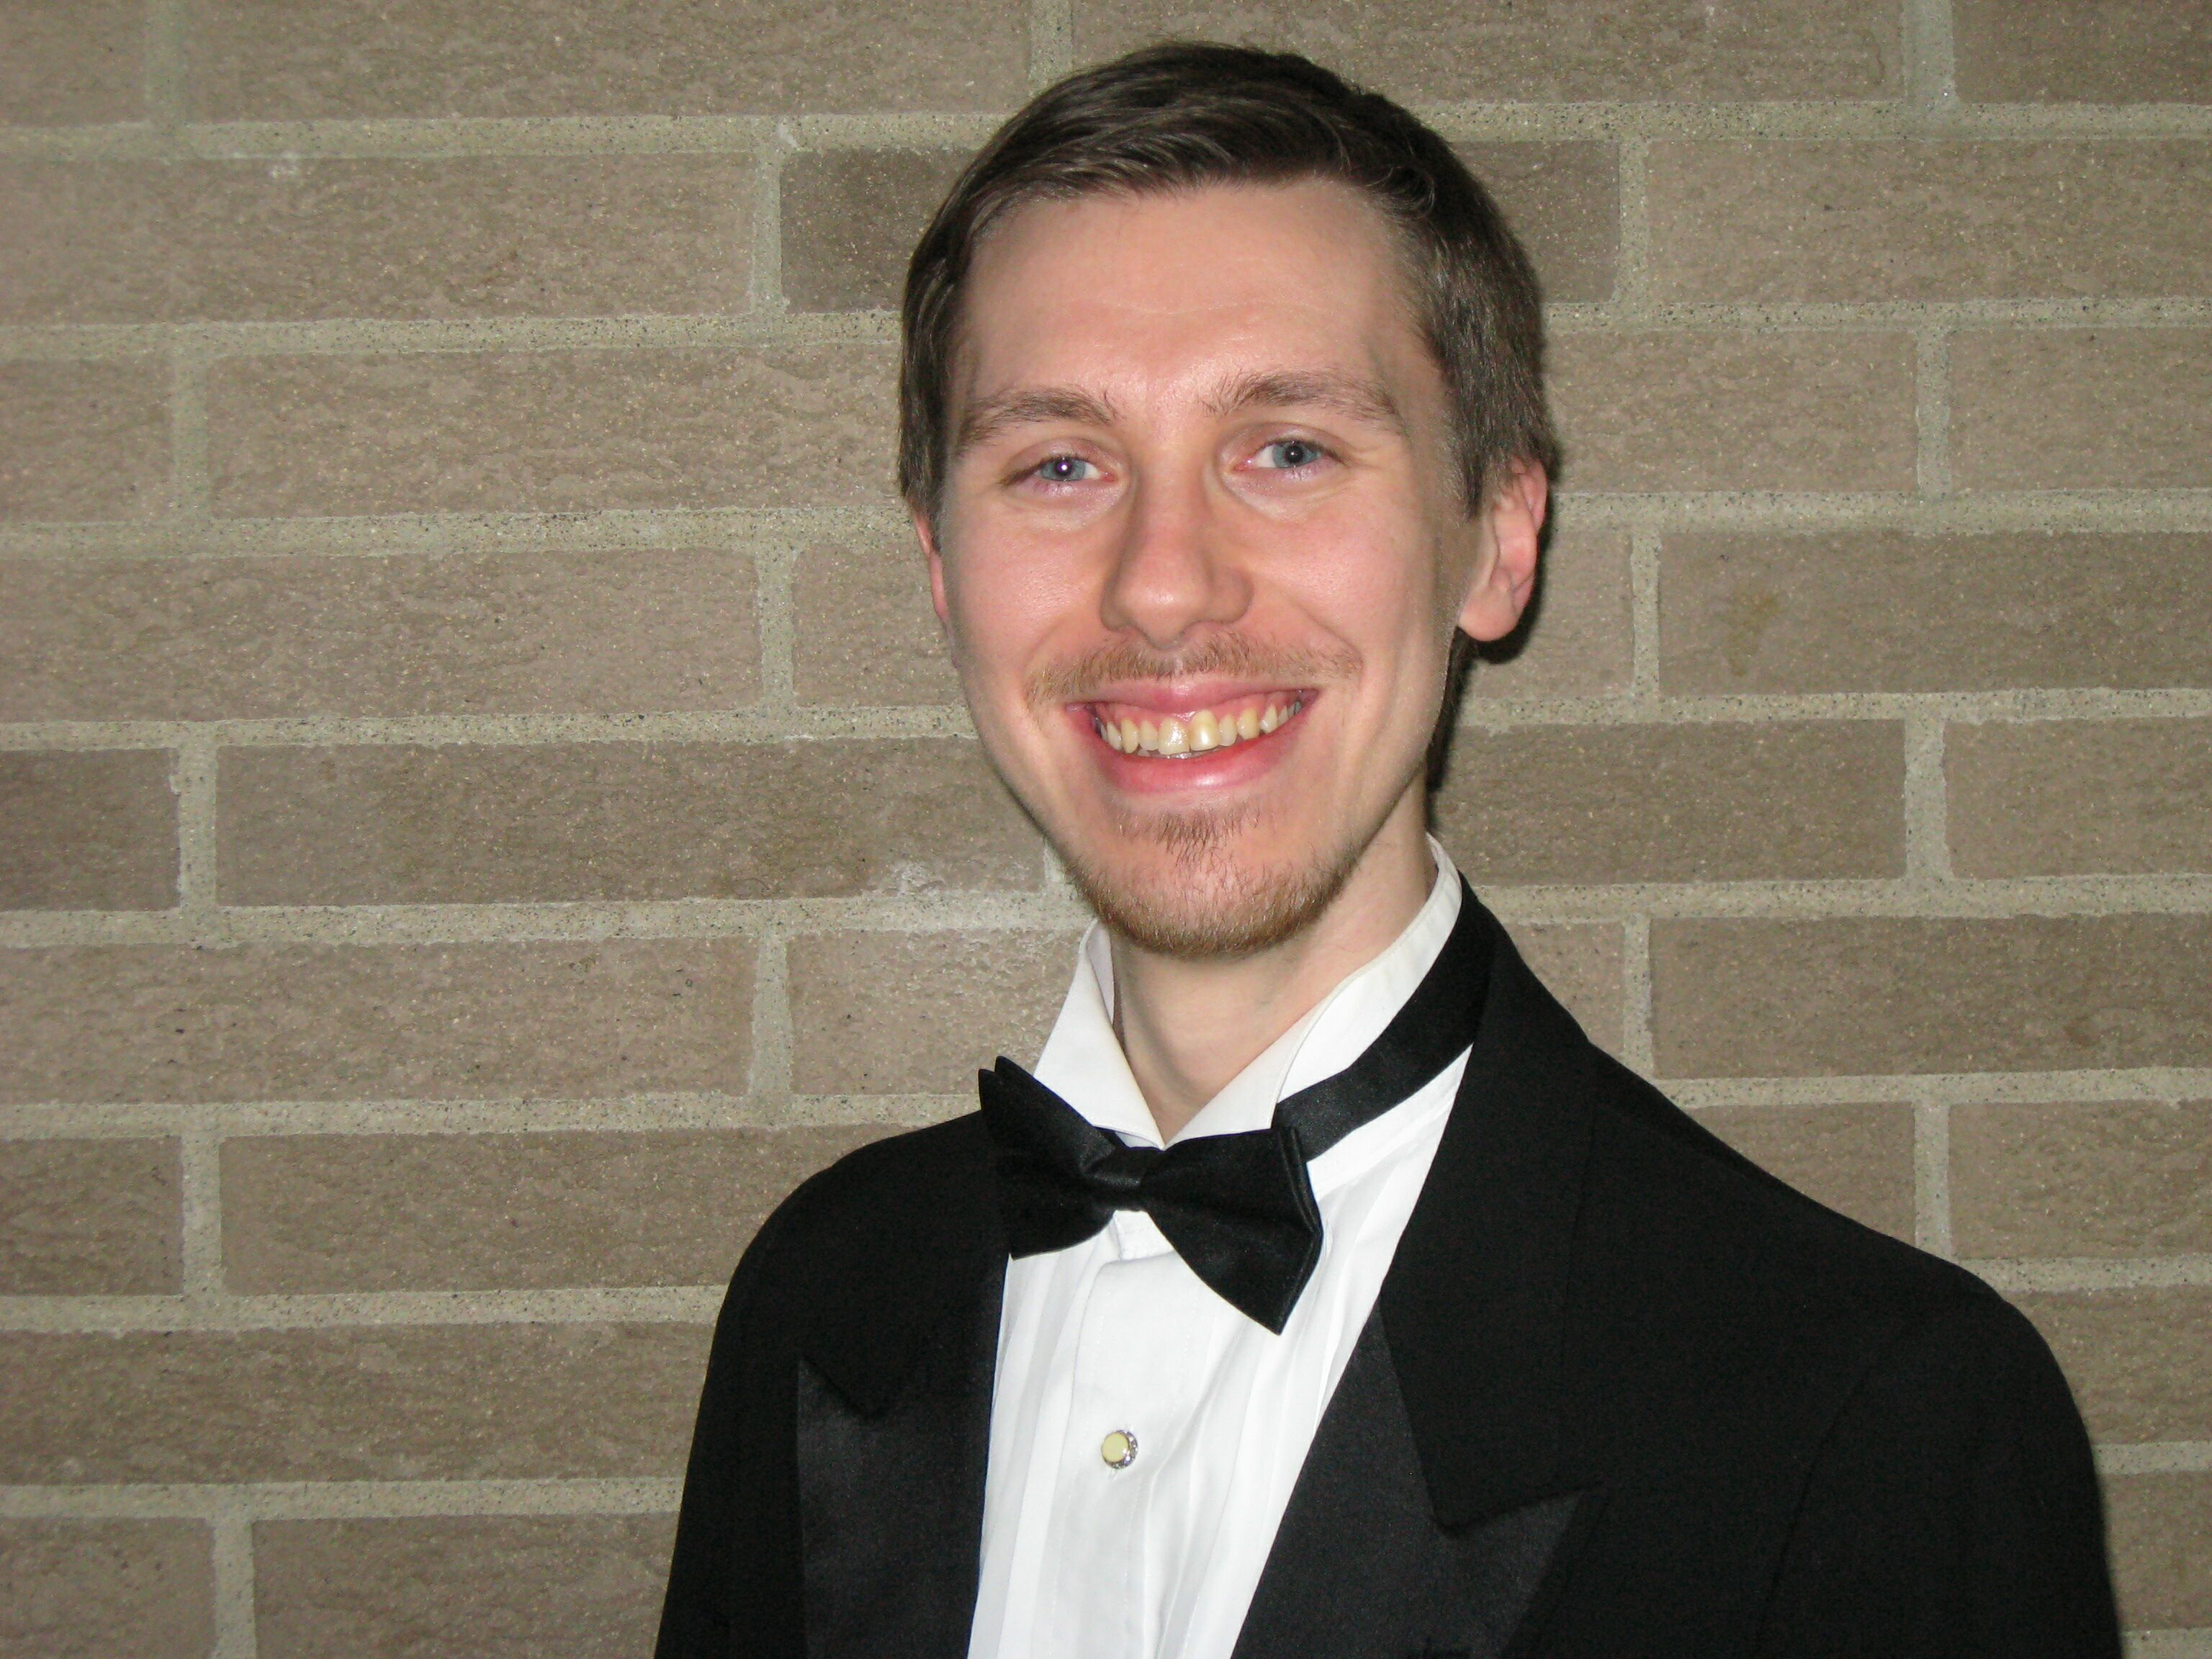 Michael Keller, conductor of the FSWE